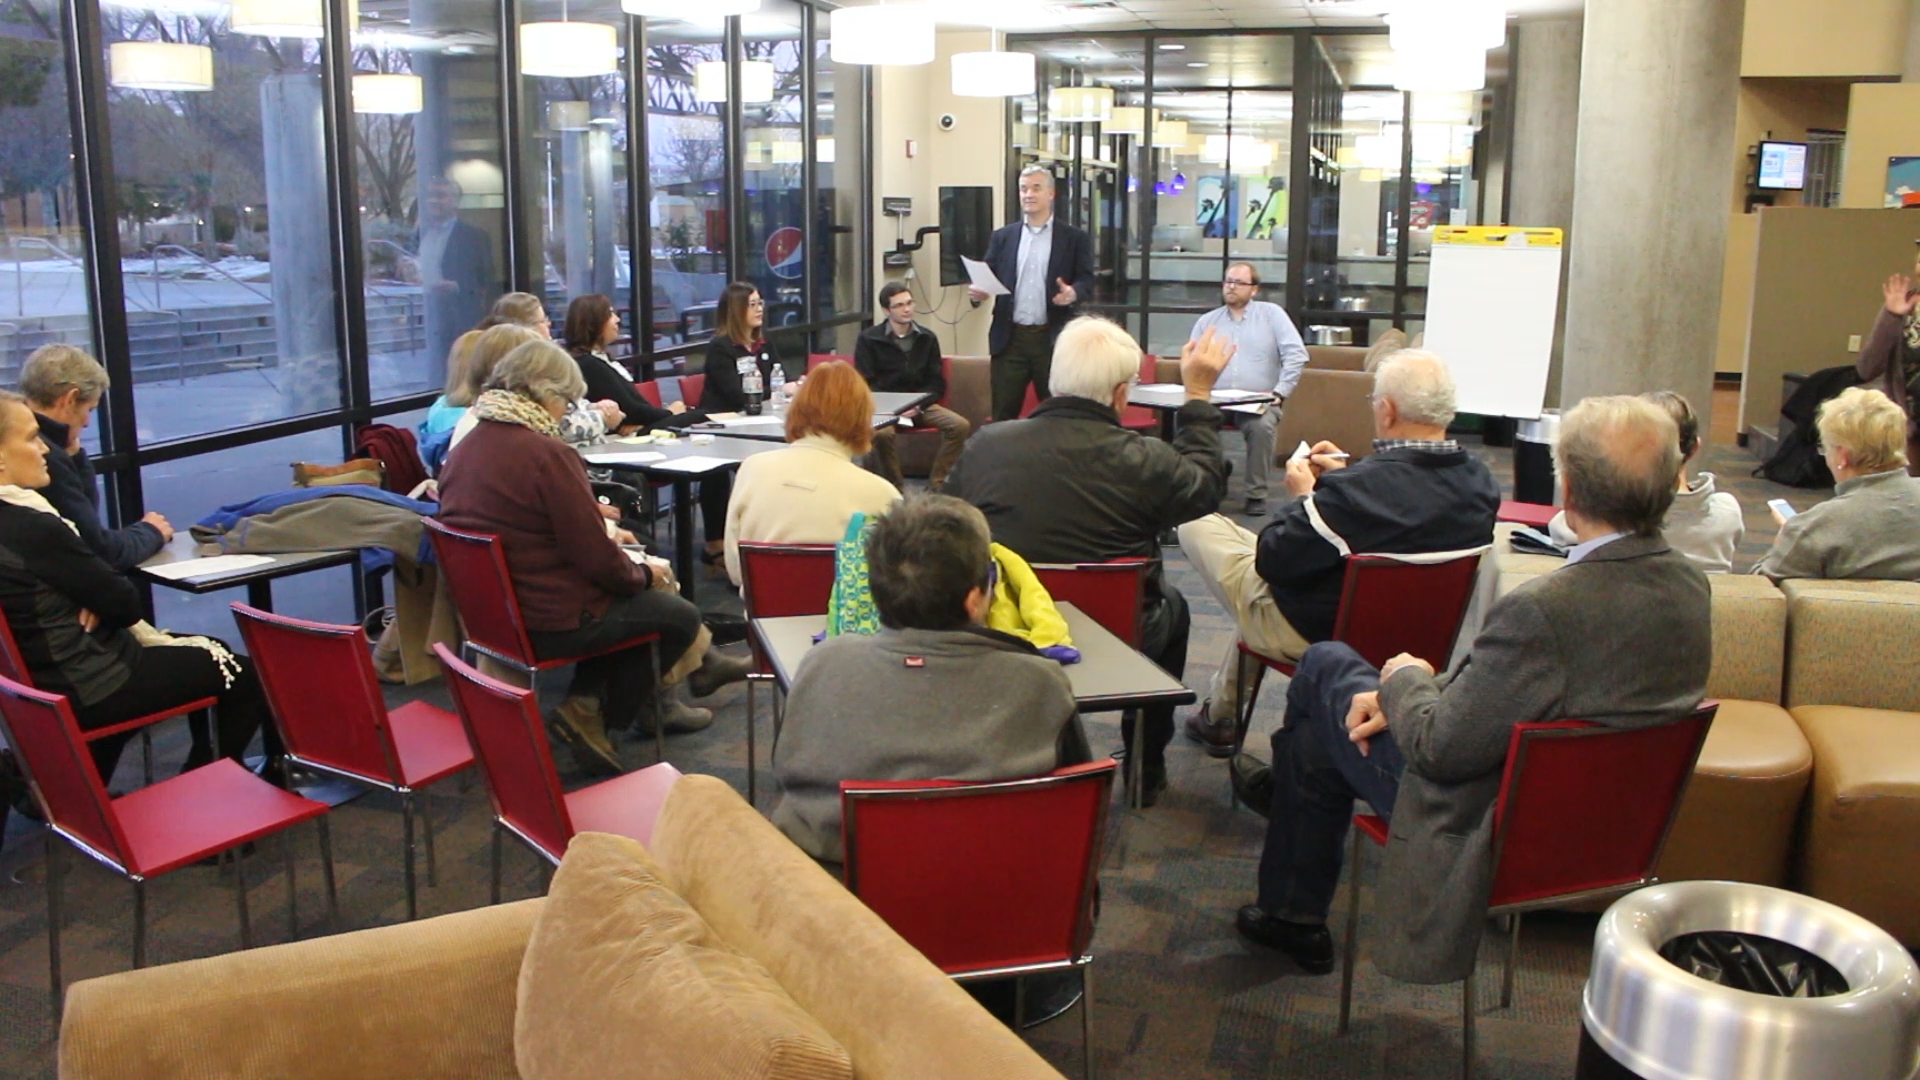 Area Democrats gather at the Gardner Center on the Dixie State University campus to meet with Peter Corroon, chair of the Utah Democratic Party, and discuss how the state party can refocus its efforts and outreach in the coming year and beyond, St. George Utah, Jan. 6, 2017 | Photo by Mike Cole, St. George News